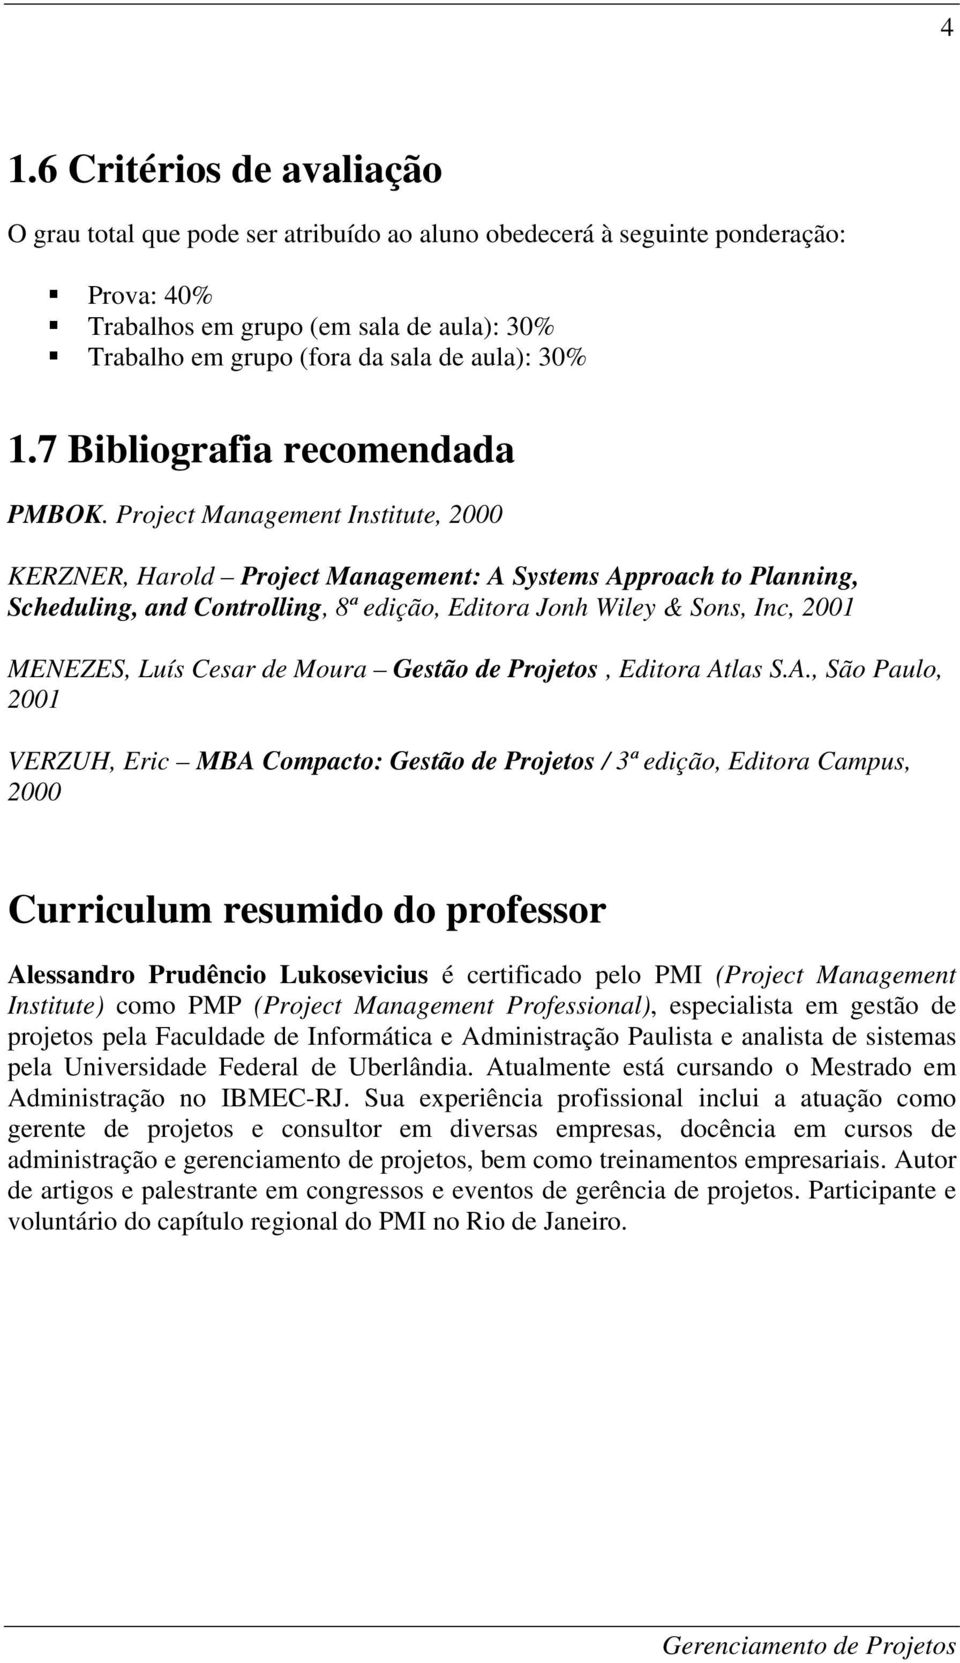 Project Management Institute, 2000 KERZNER, Harold Project Management: A Systems Approach to Planning, Scheduling, and Controlling, 8ª edição, Editora Jonh Wiley & Sons, Inc, 2001 MENEZES, Luís Cesar